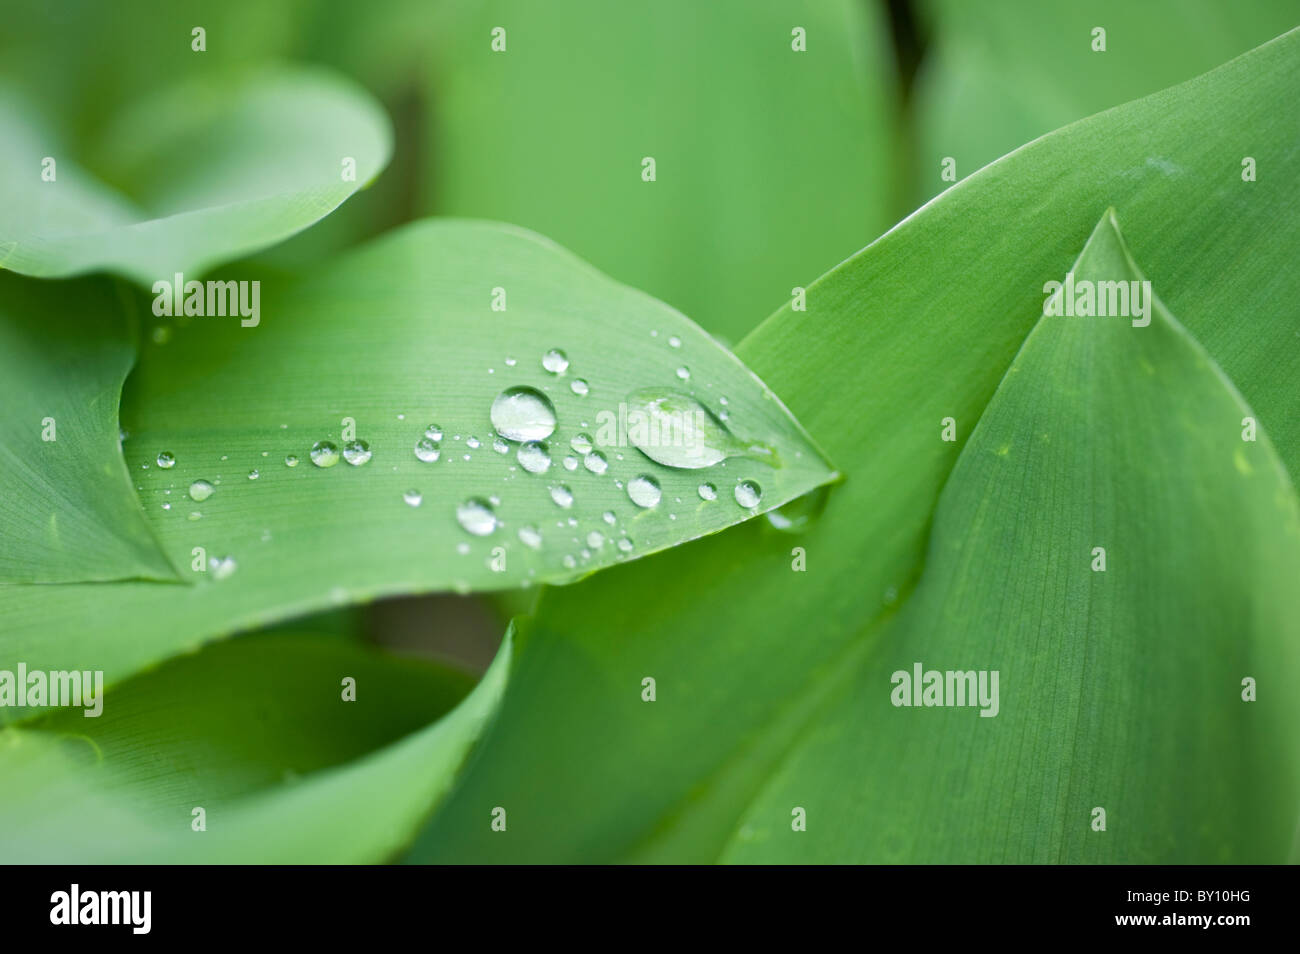 Raindrops on Lily of the Vally leaves - Stock Image